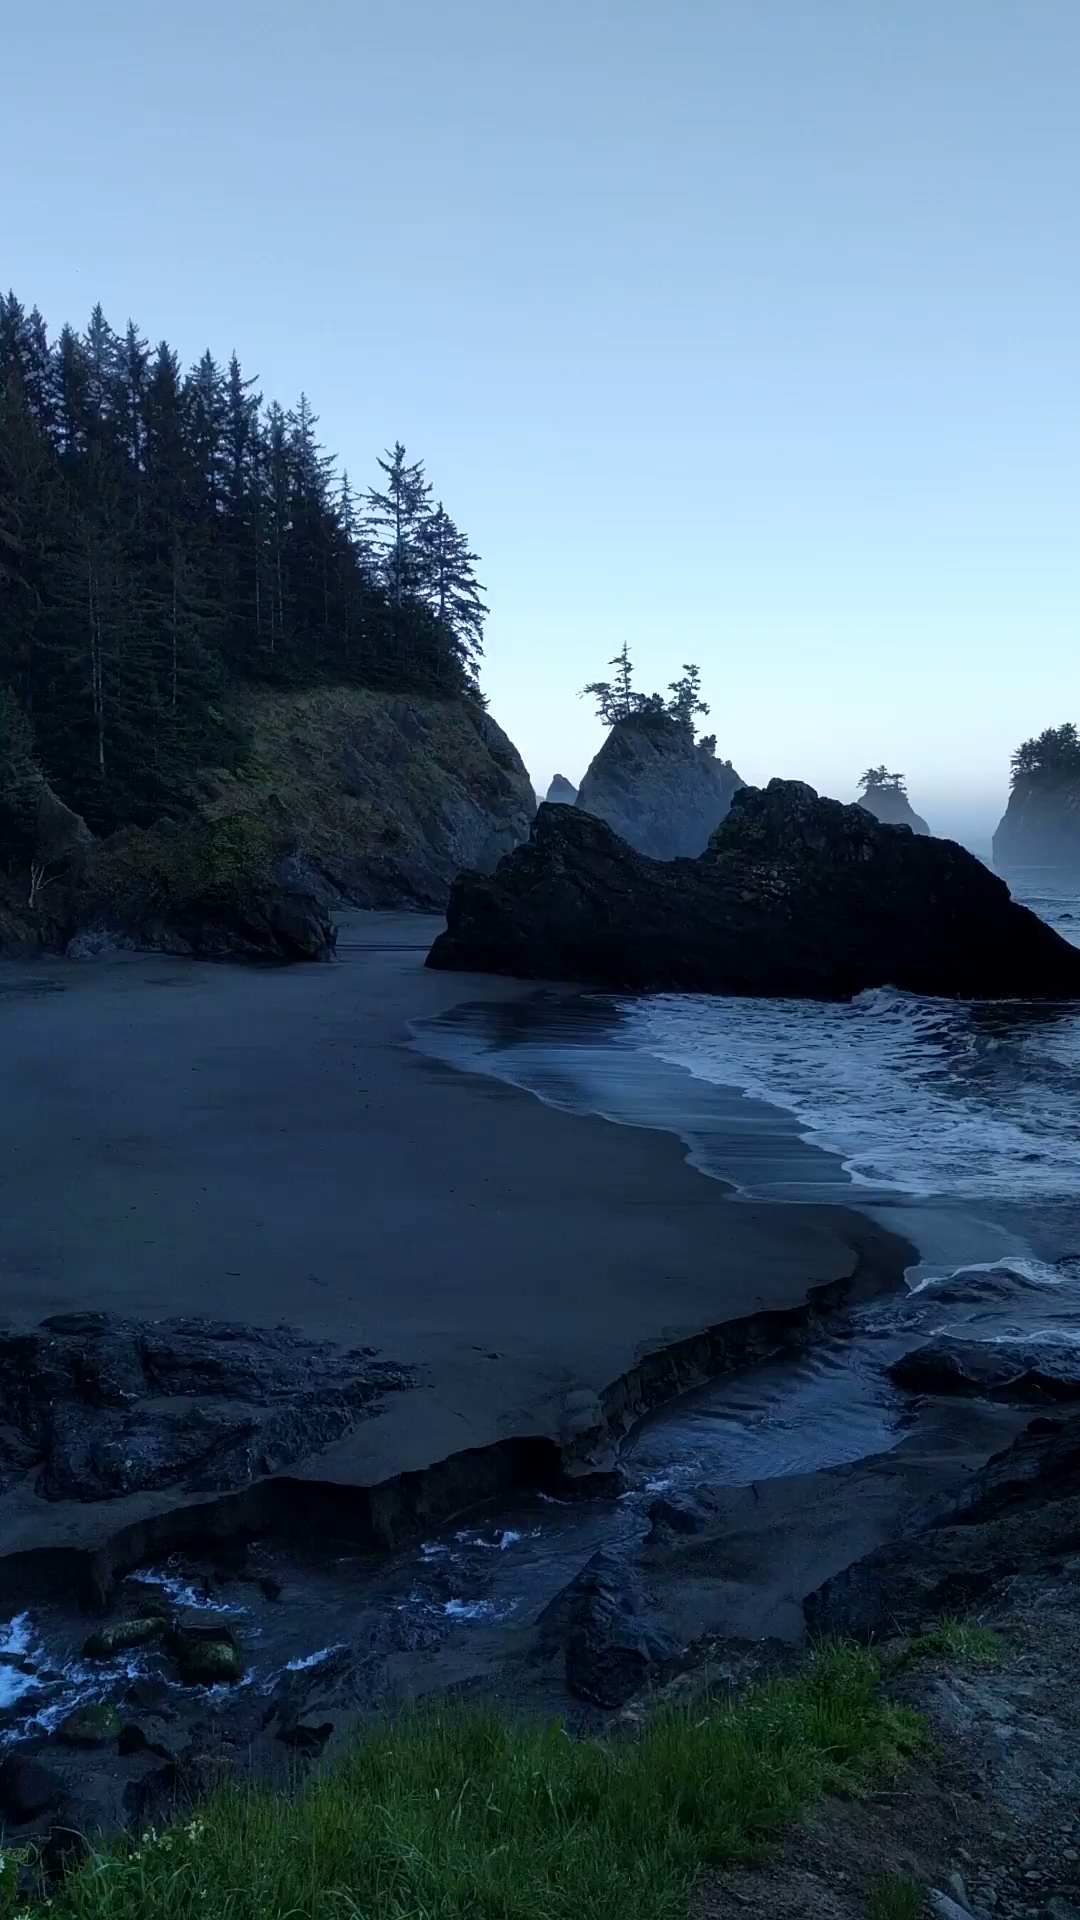 Black sand beach in Oregon - check out our guide for more info!